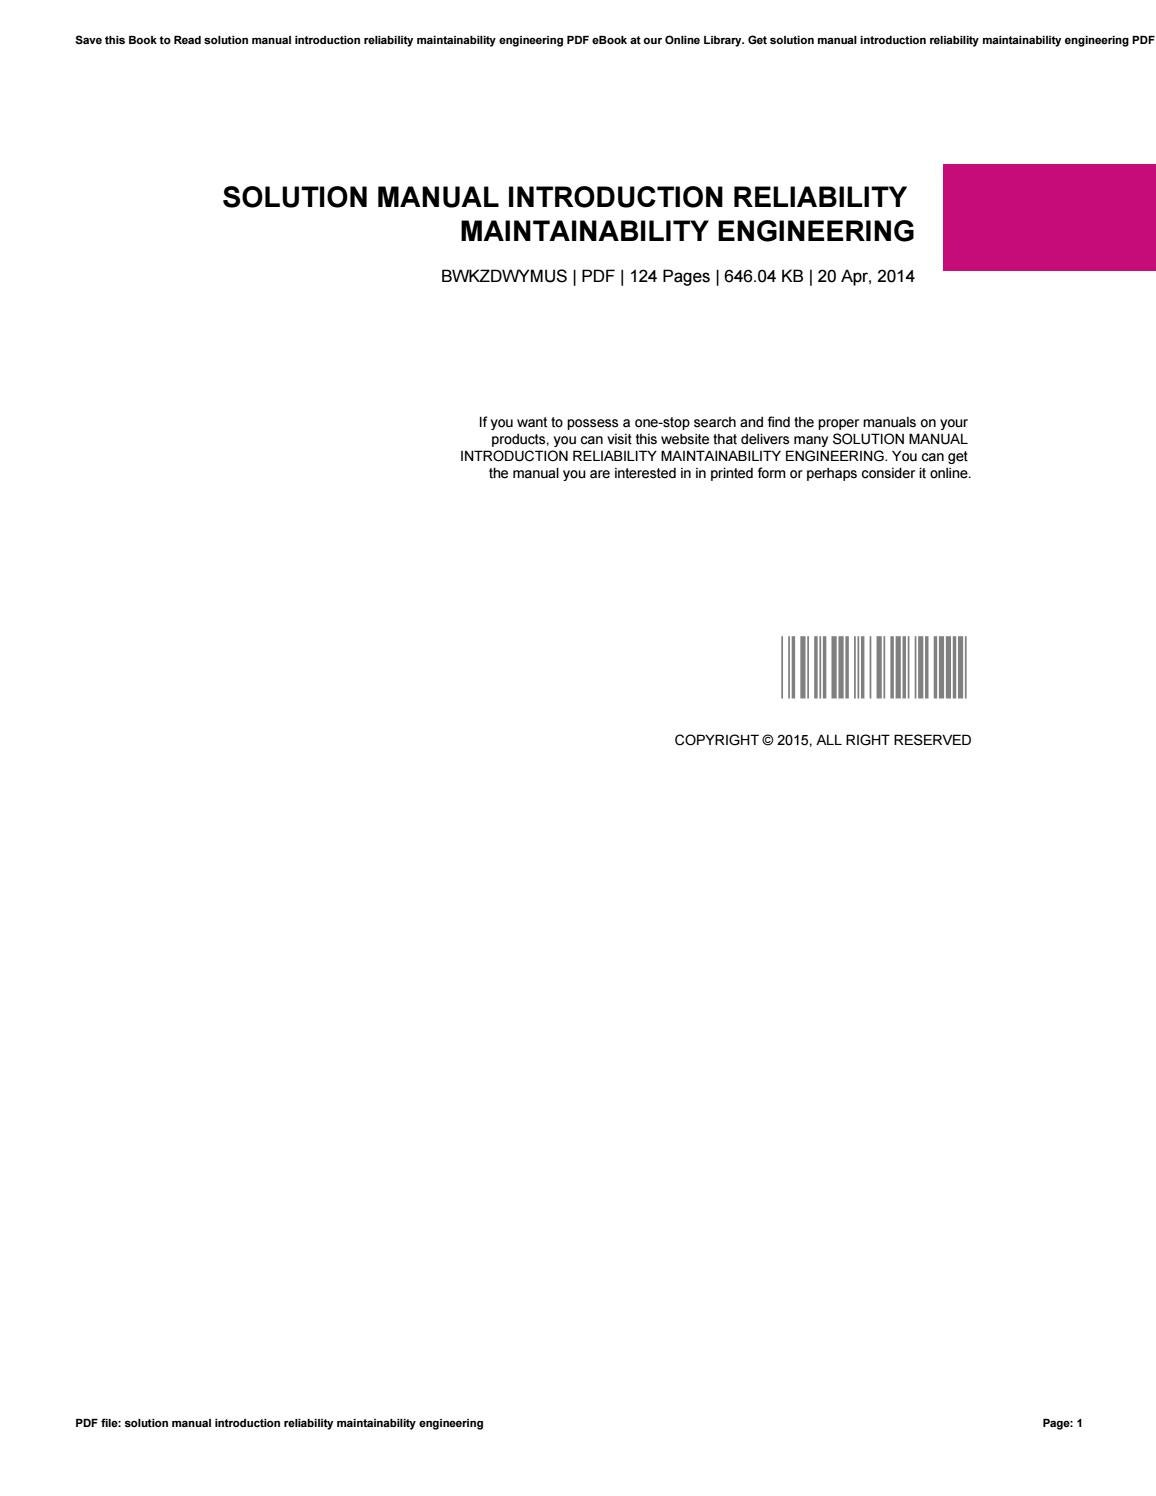 Solution manual introduction reliability maintainability engineering by  DouglasBeall2818 - issuu